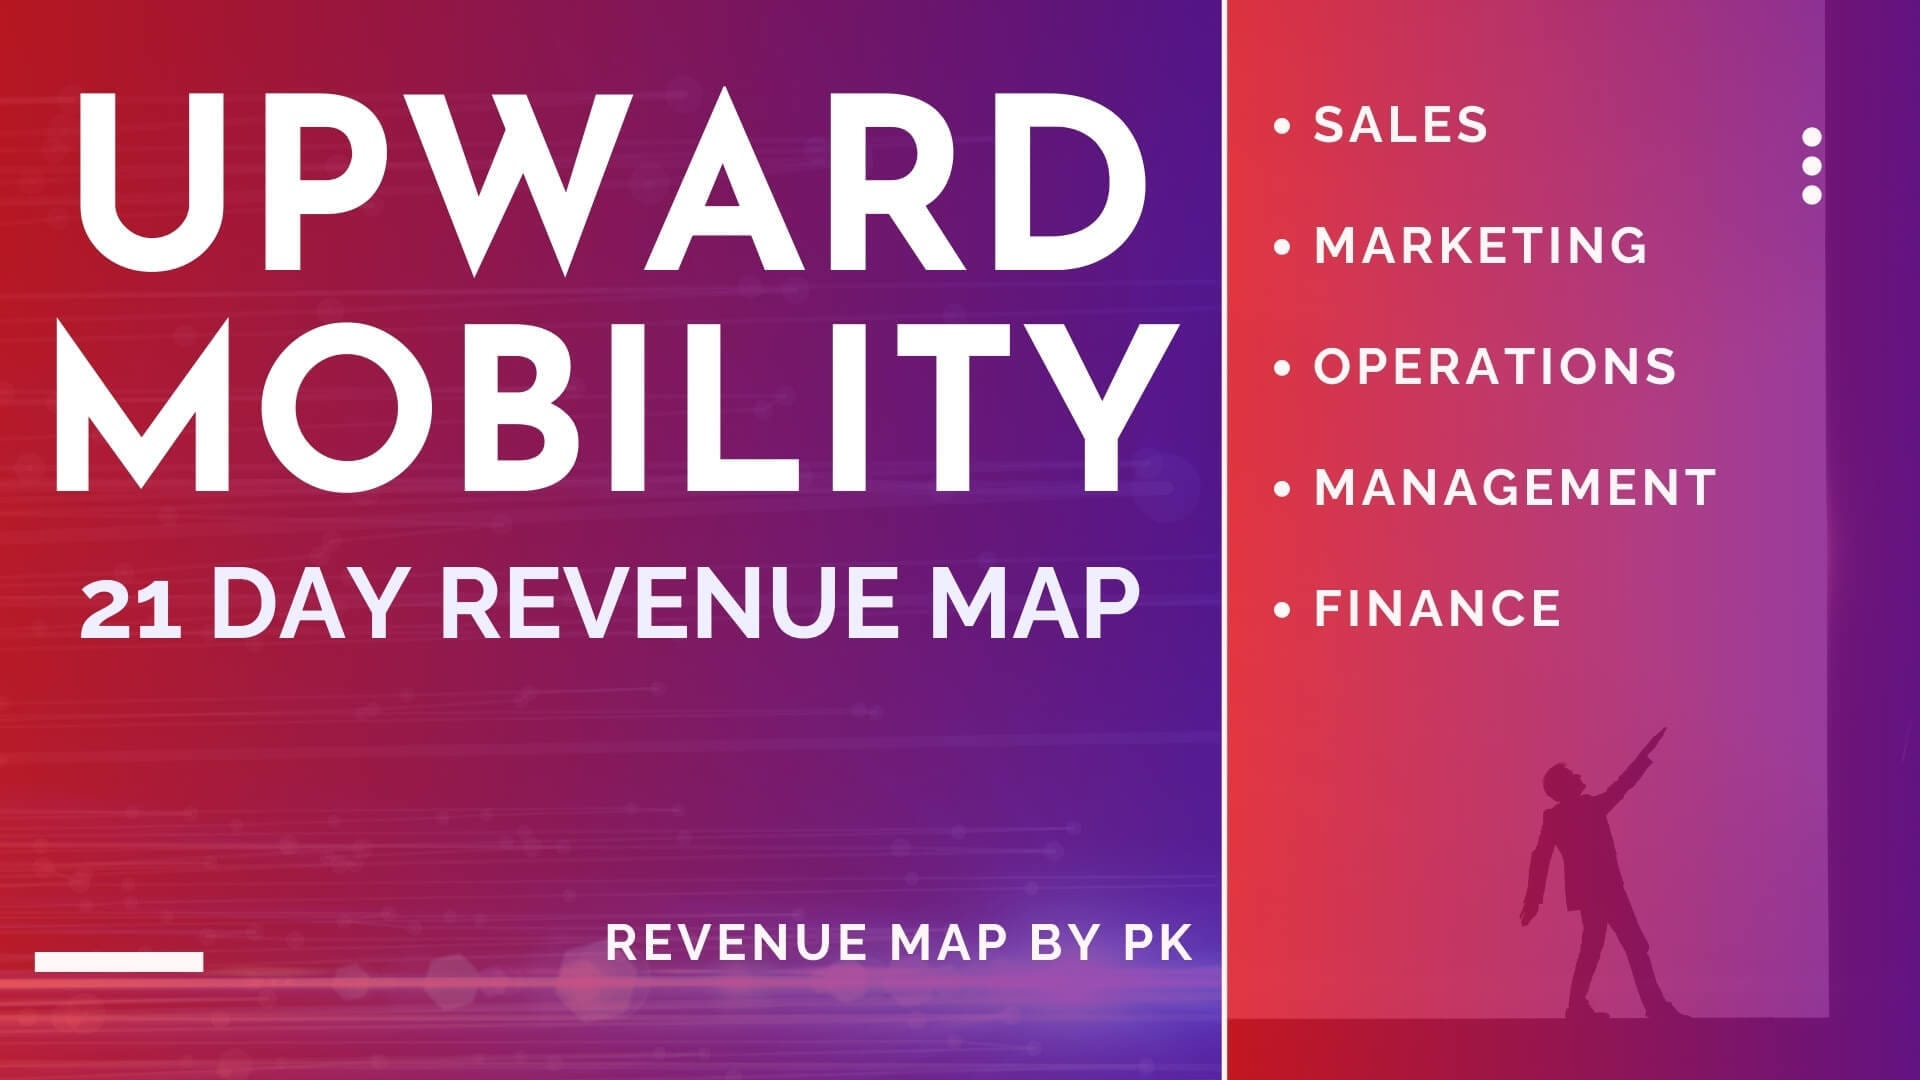 Upward Mobility 21 day revenue map by pk teaching sales marketing operations management and finance